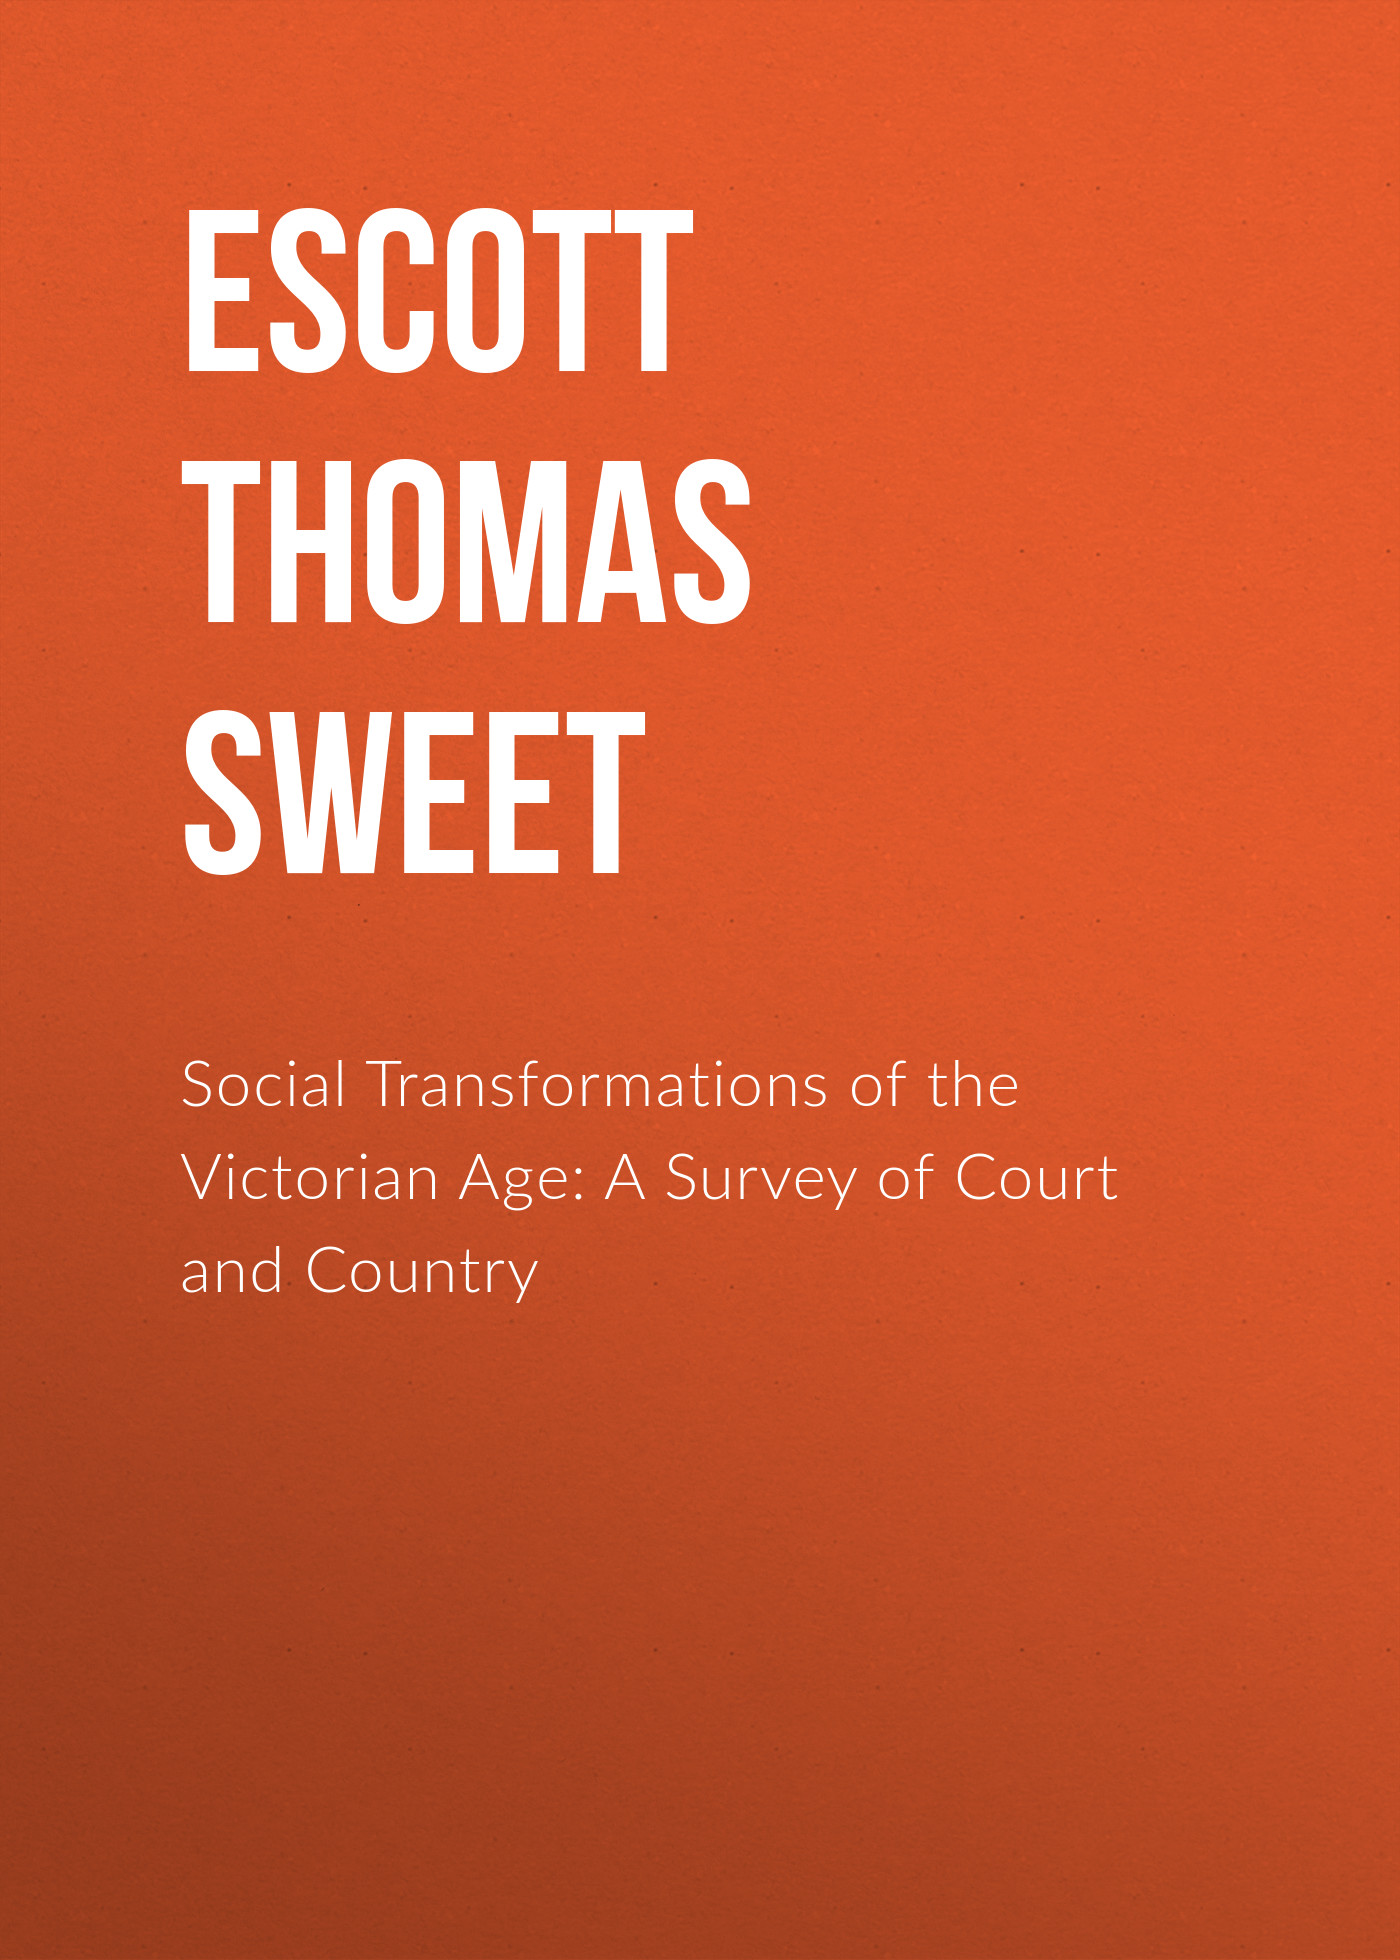 Escott Thomas Hay Sweet Social Transformations of the Victorian Age: A Survey of Court and Country new fashion watch women rhinestone quartz watch relogio feminino the women wrist watch dress fashion watch reloj mujer dift box